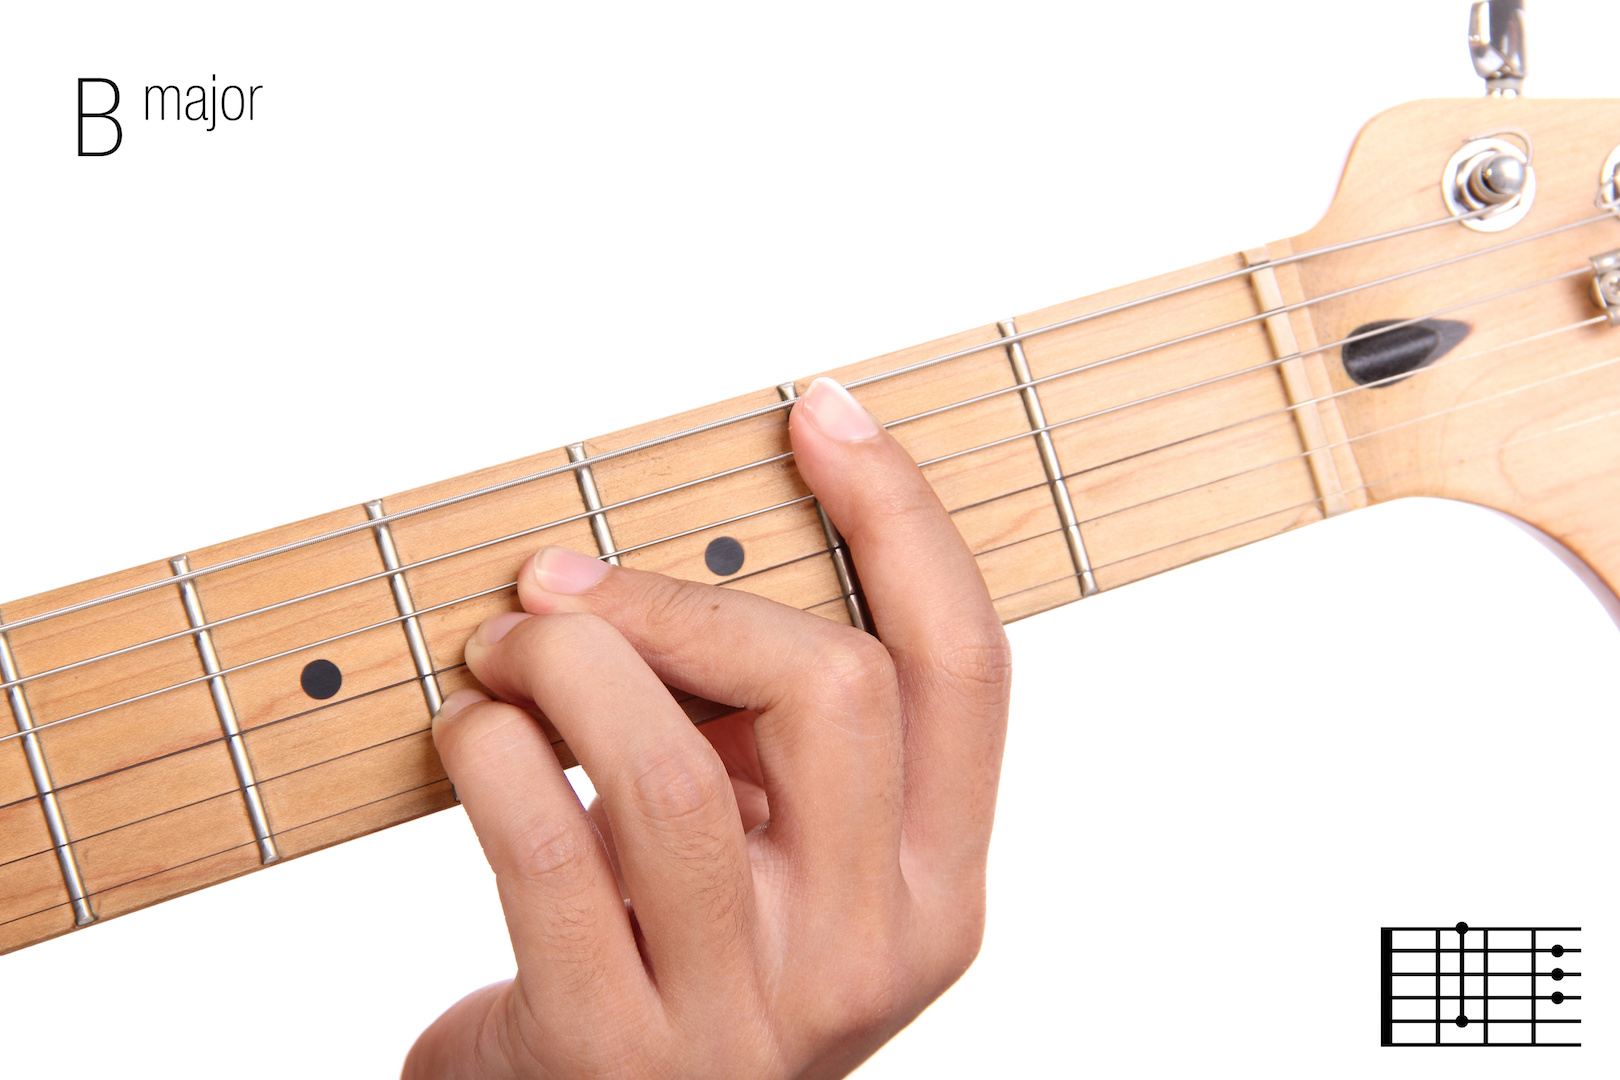 B Major Chord on Guitar Chord Shapes, Major Scale & Songs